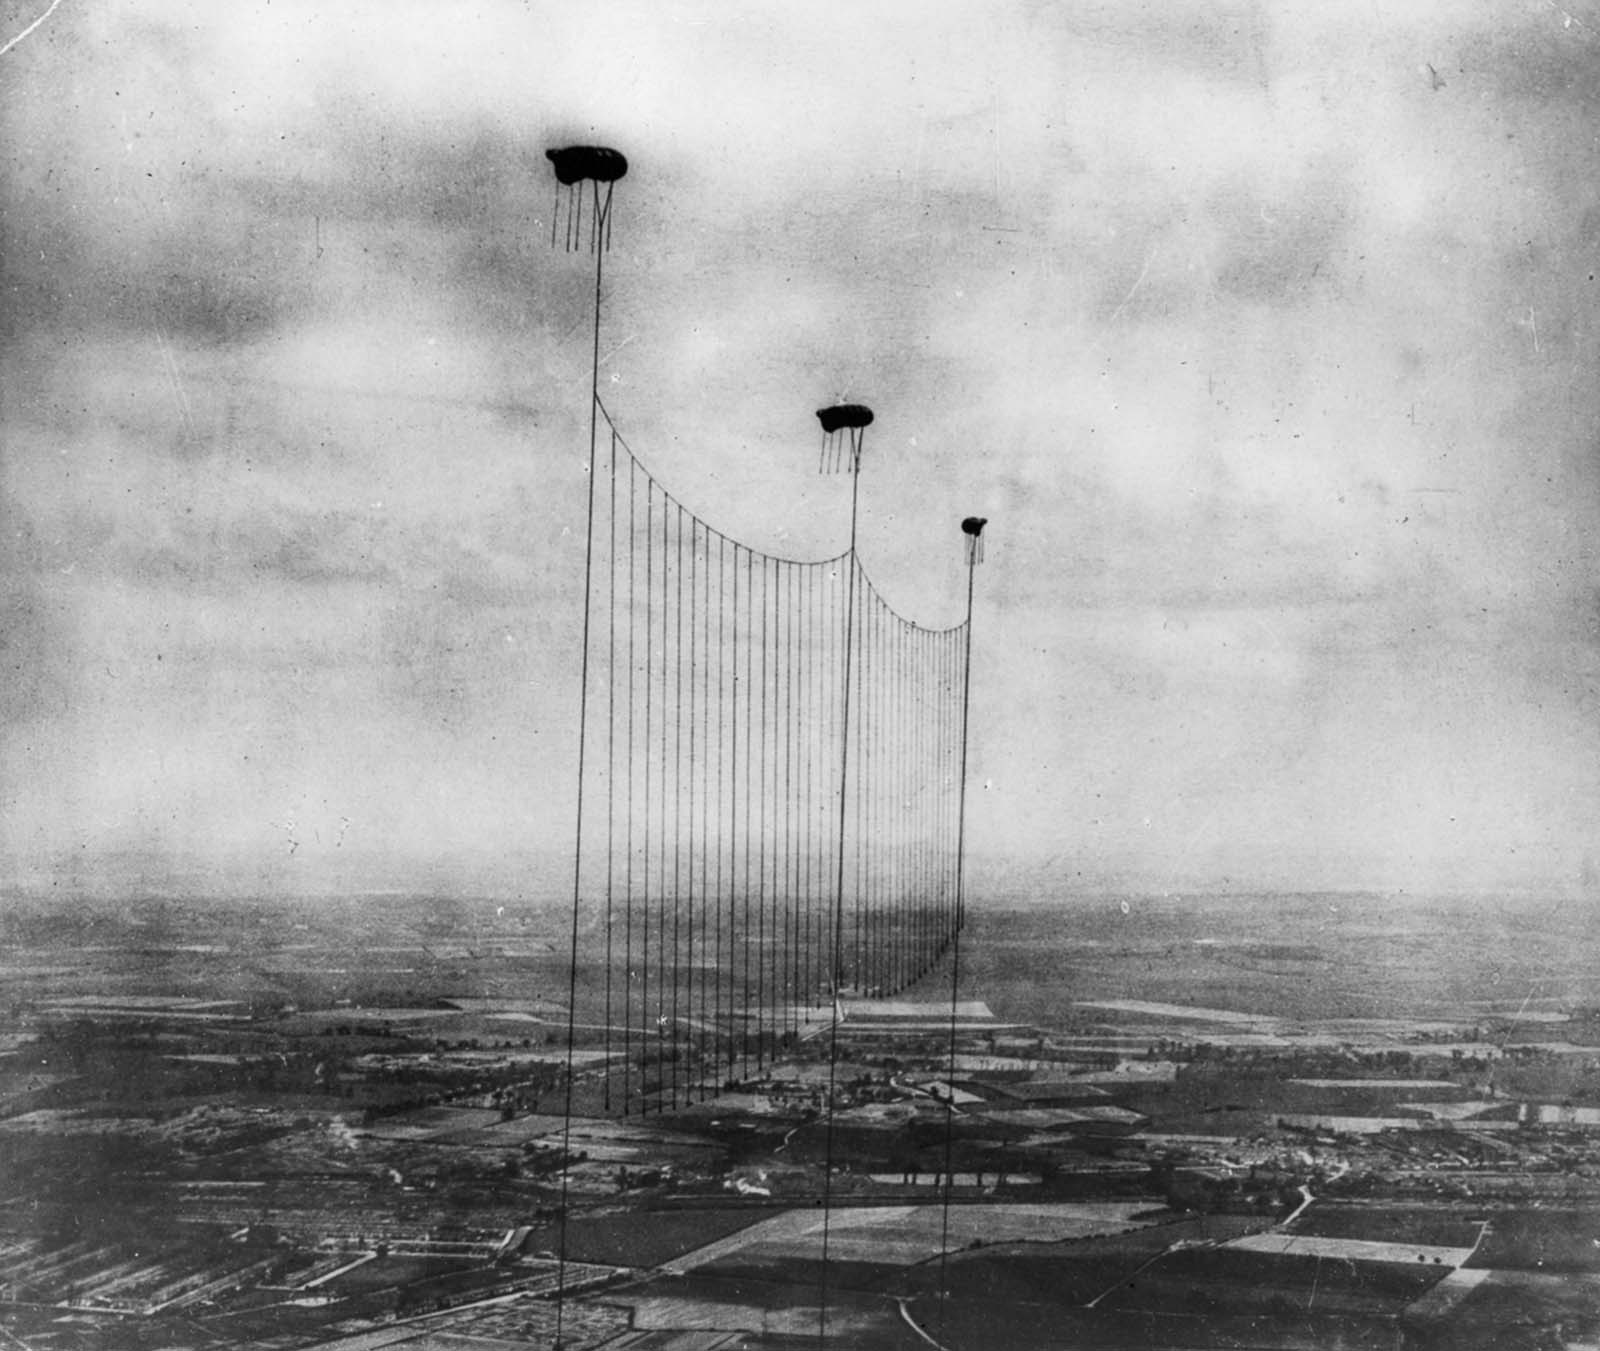 A balloon apron is suspended to defend London from air attacks. 1915.